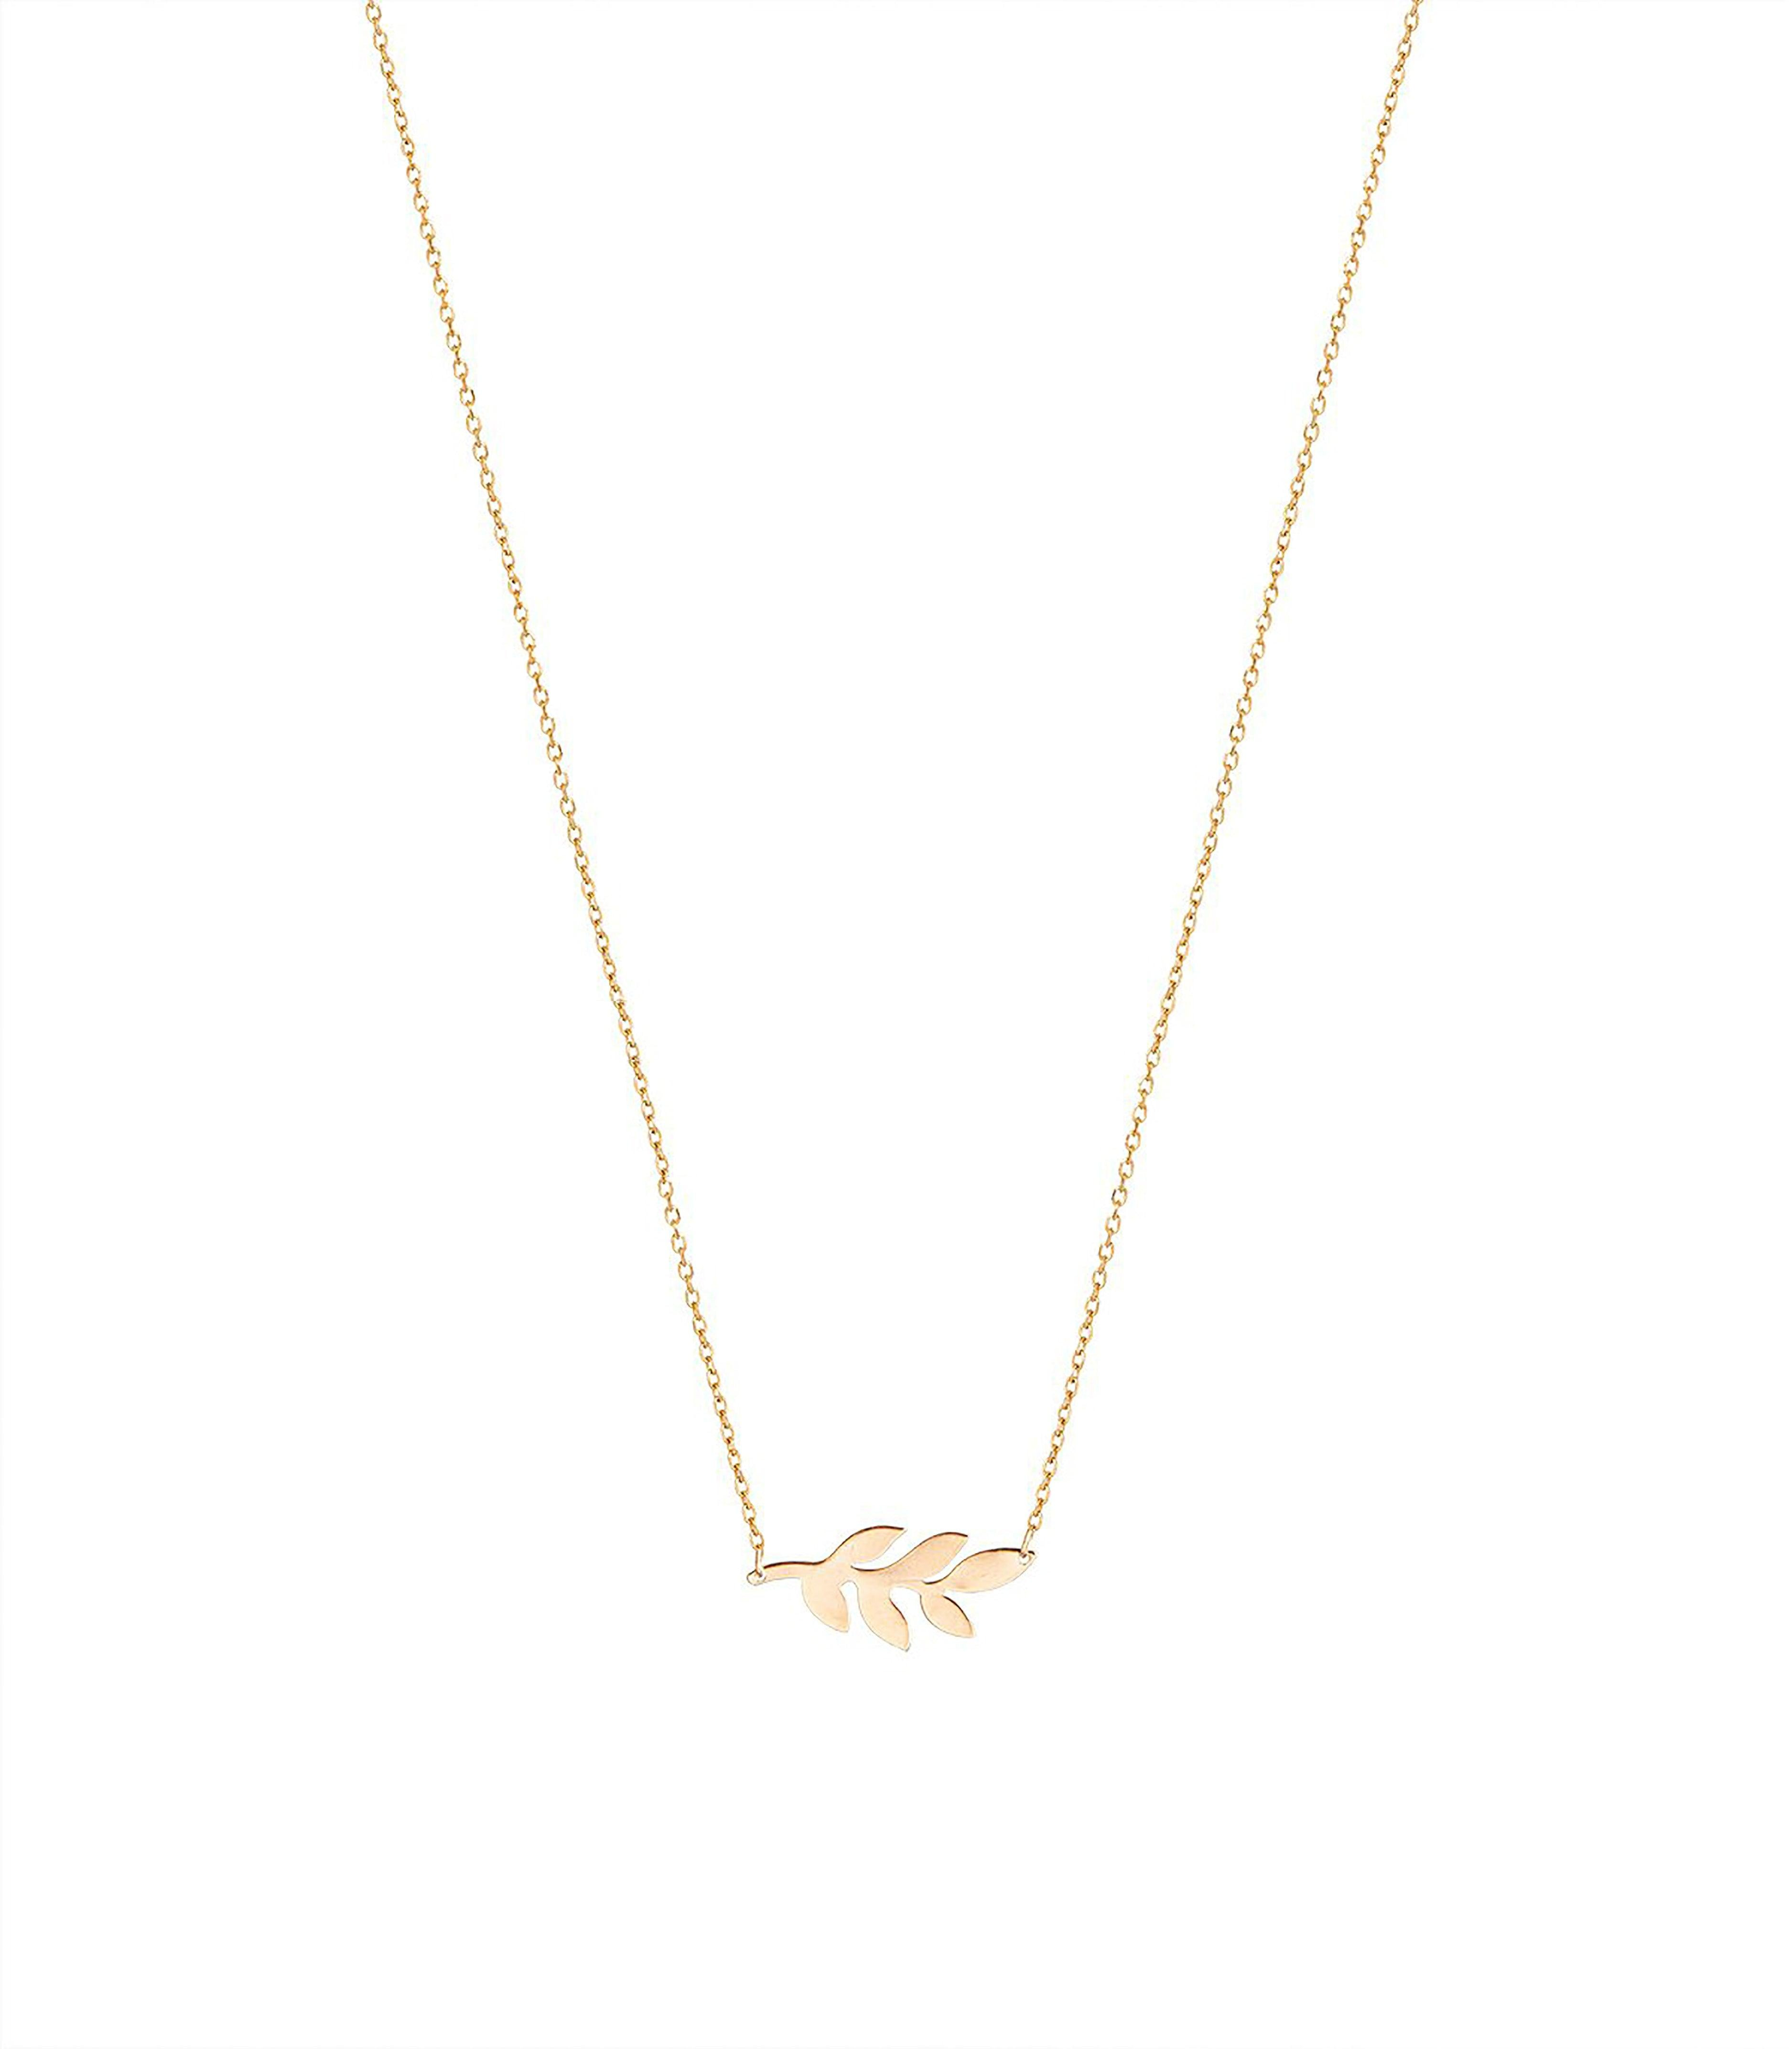 The Olive Leaf & Diamond Necklace